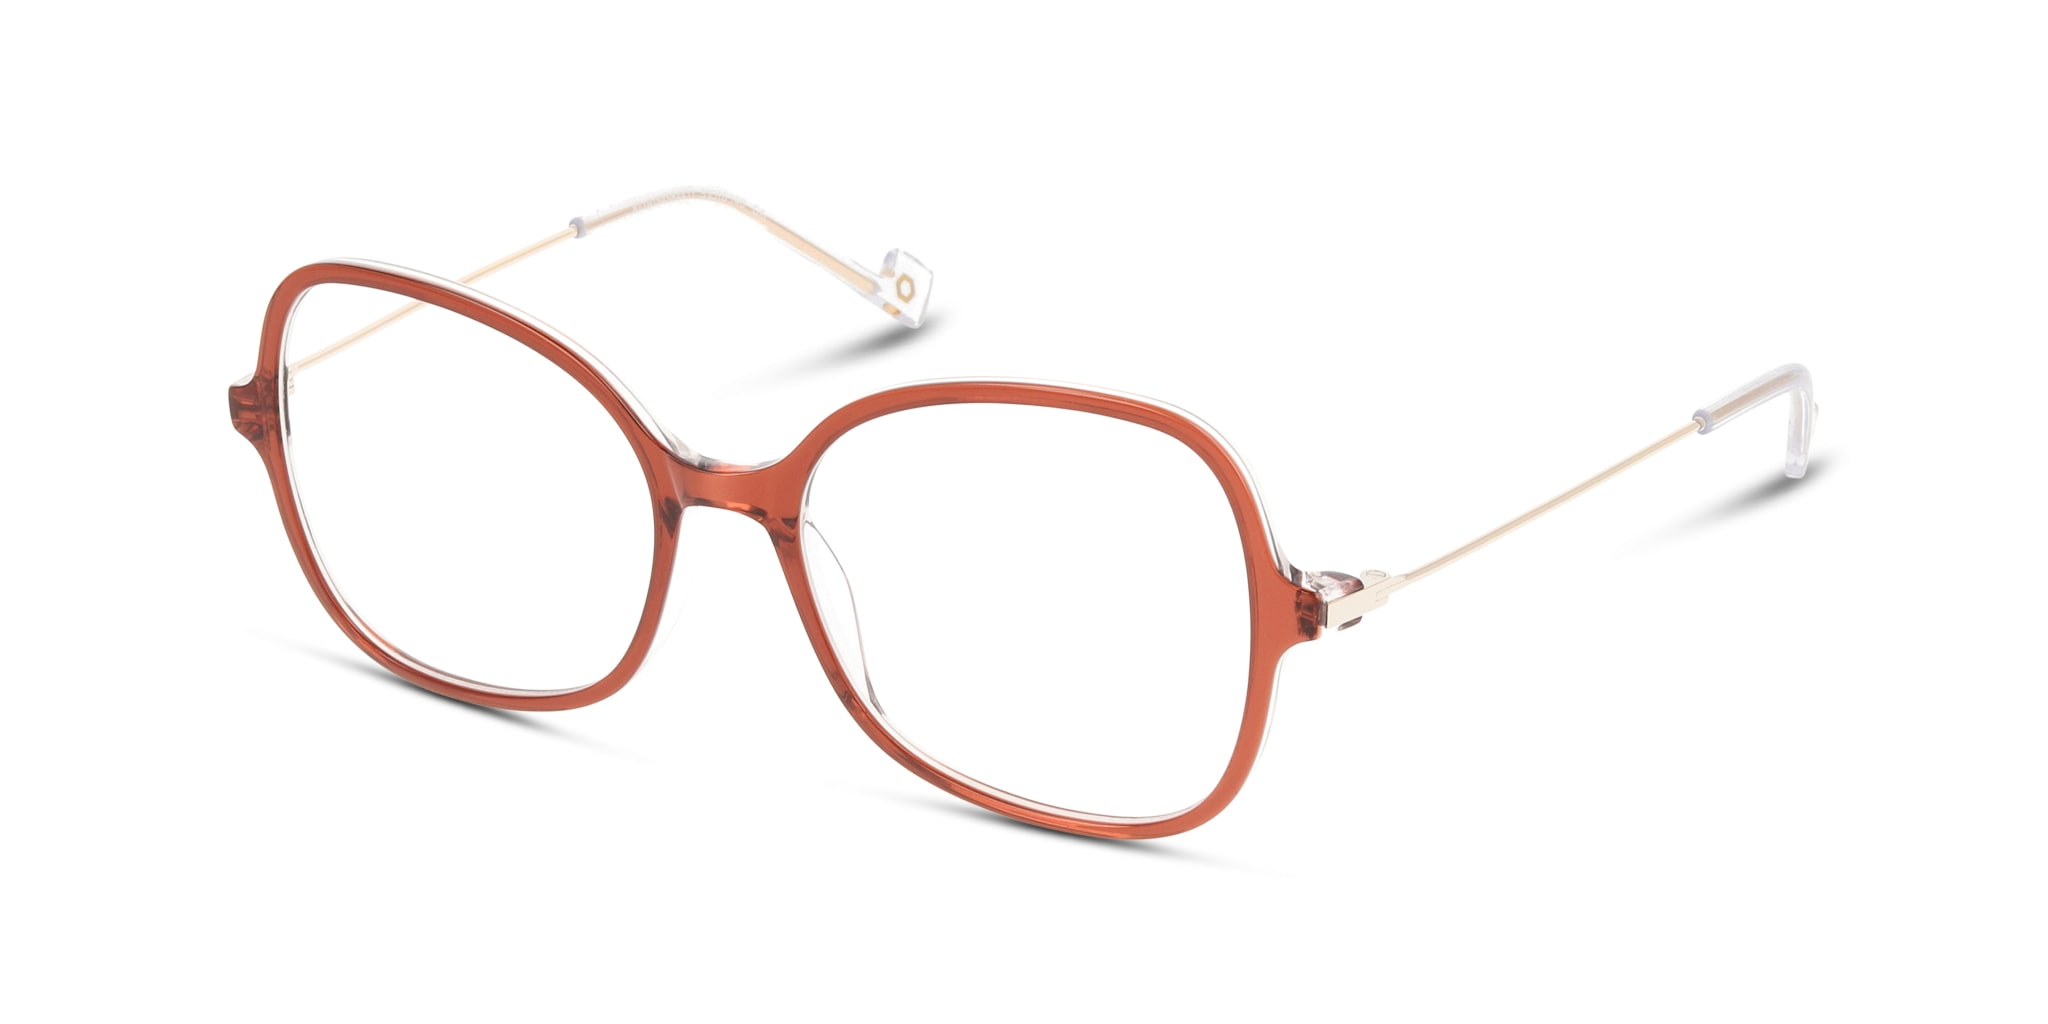 8719154584411-angle-03-in-style-iskf12-eyewear-brown-gold